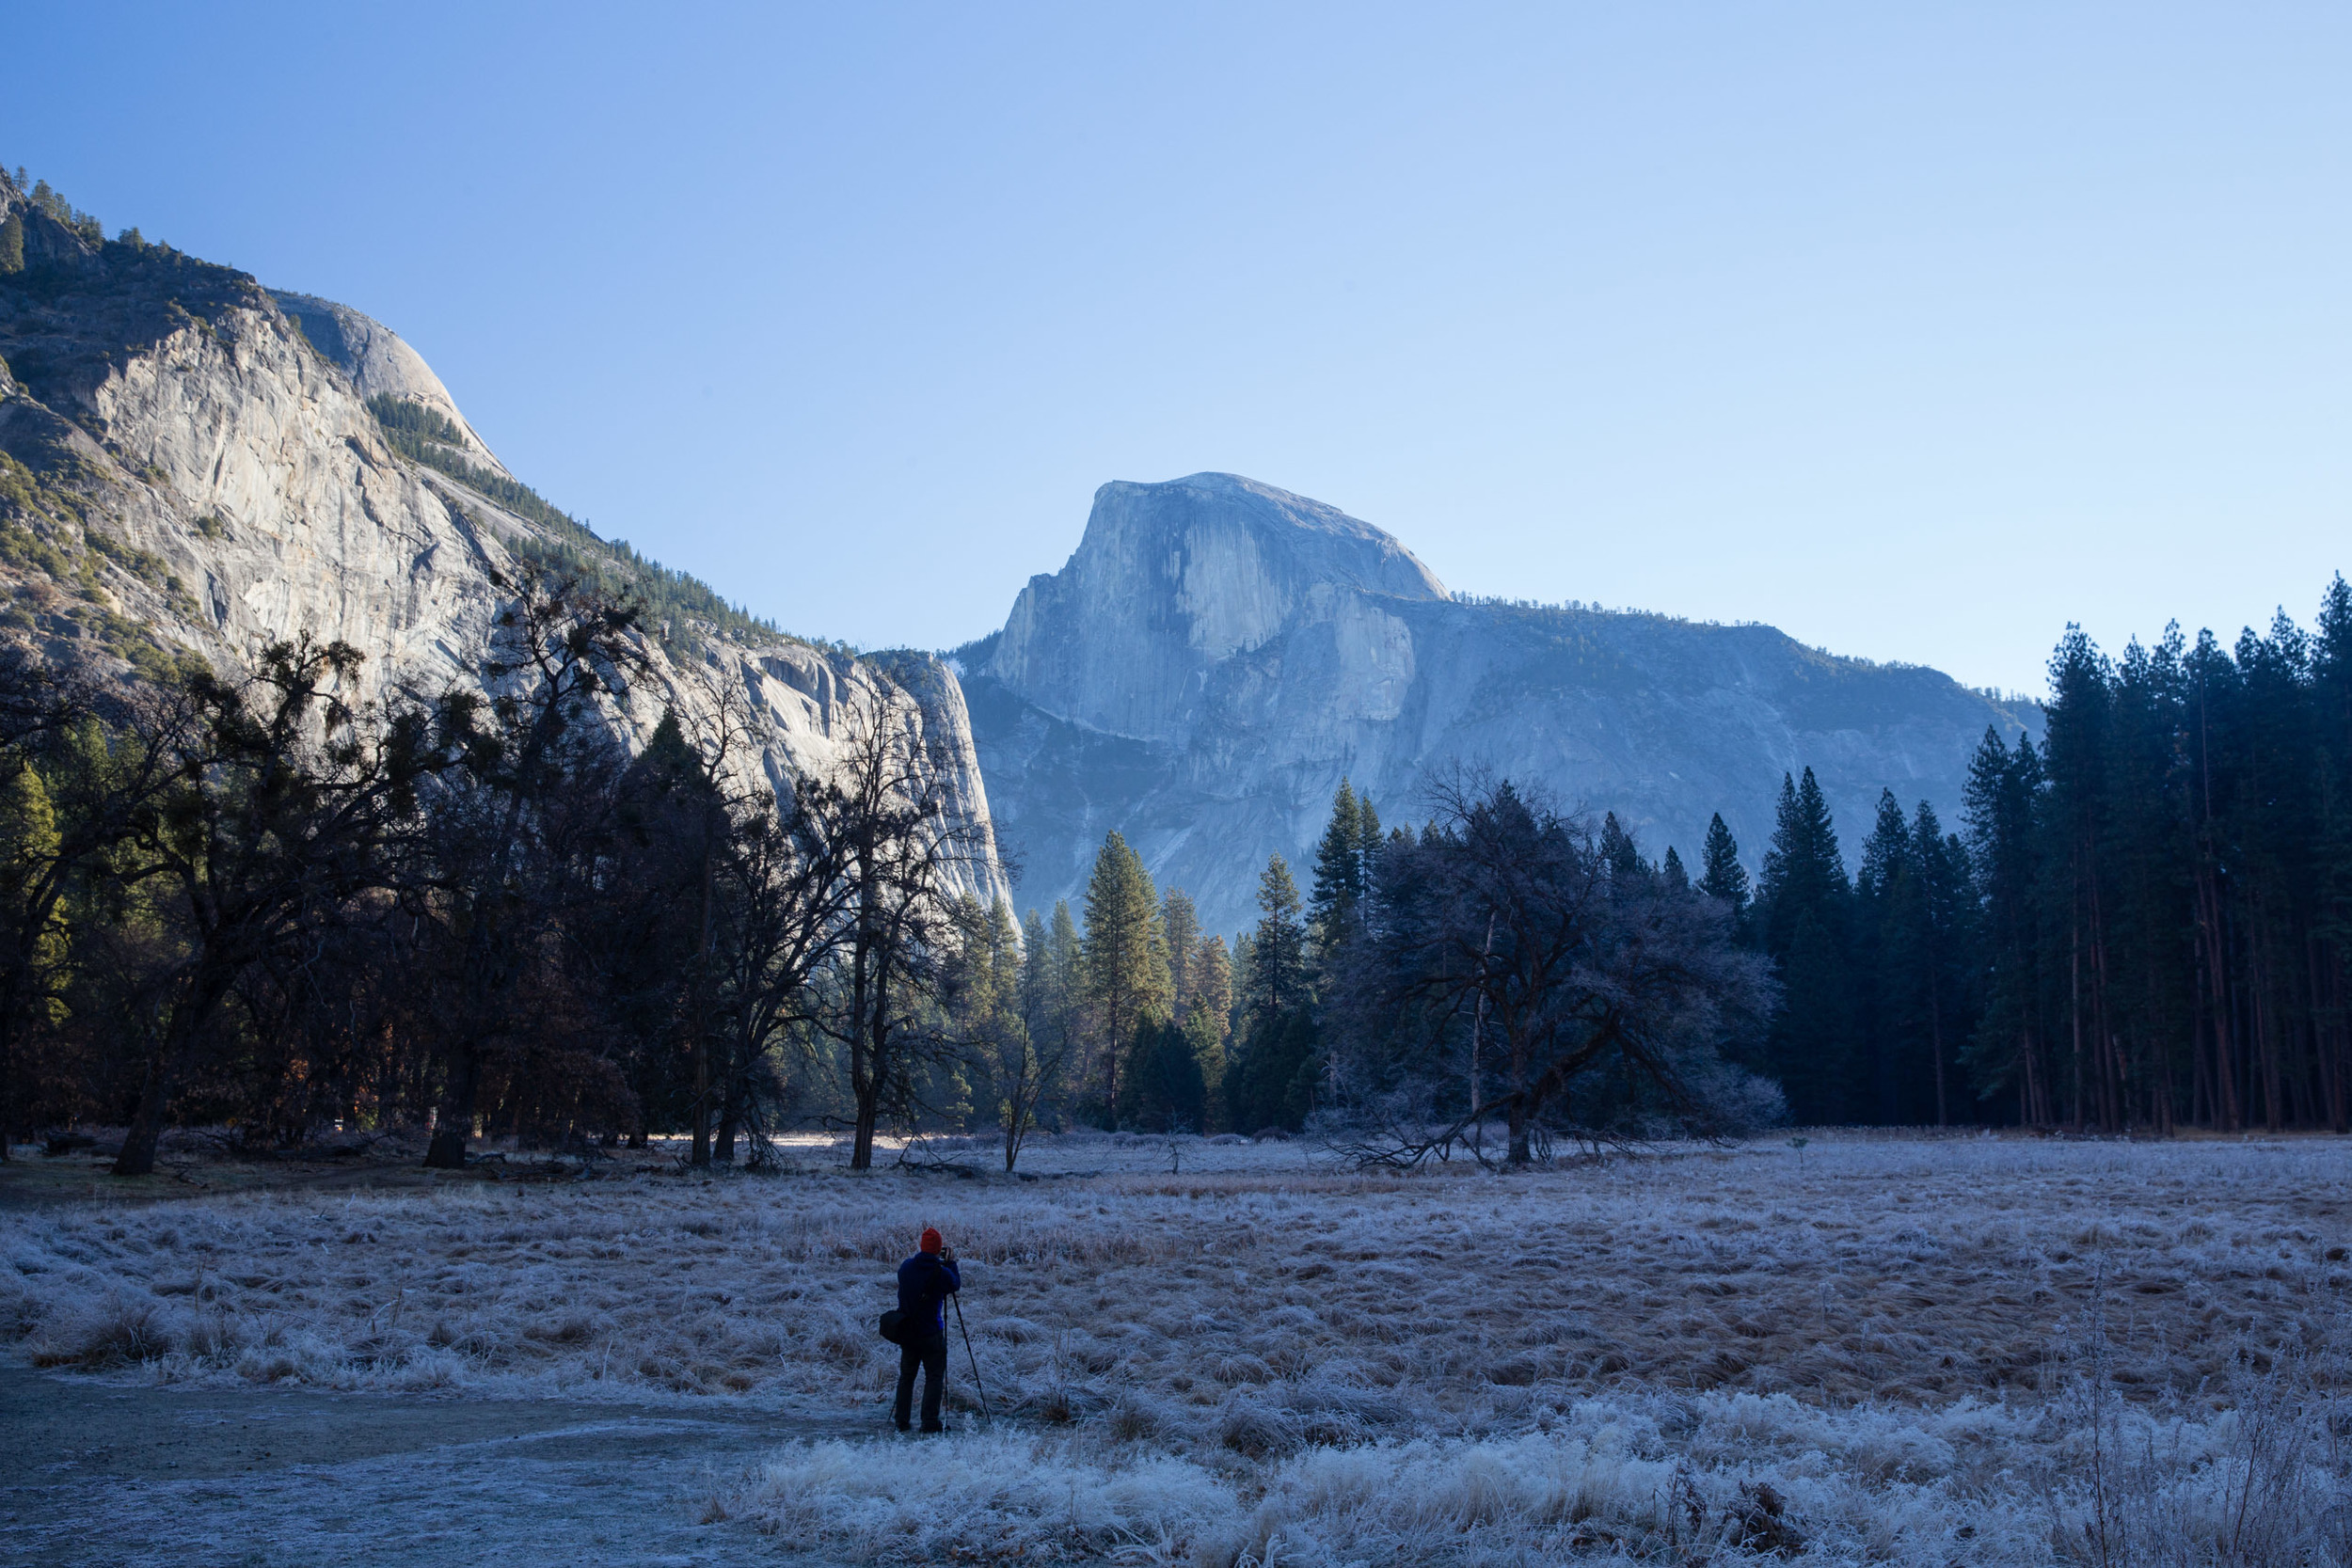 Up bright and early, frost still covers the meadow while a photographer sets up his shot.